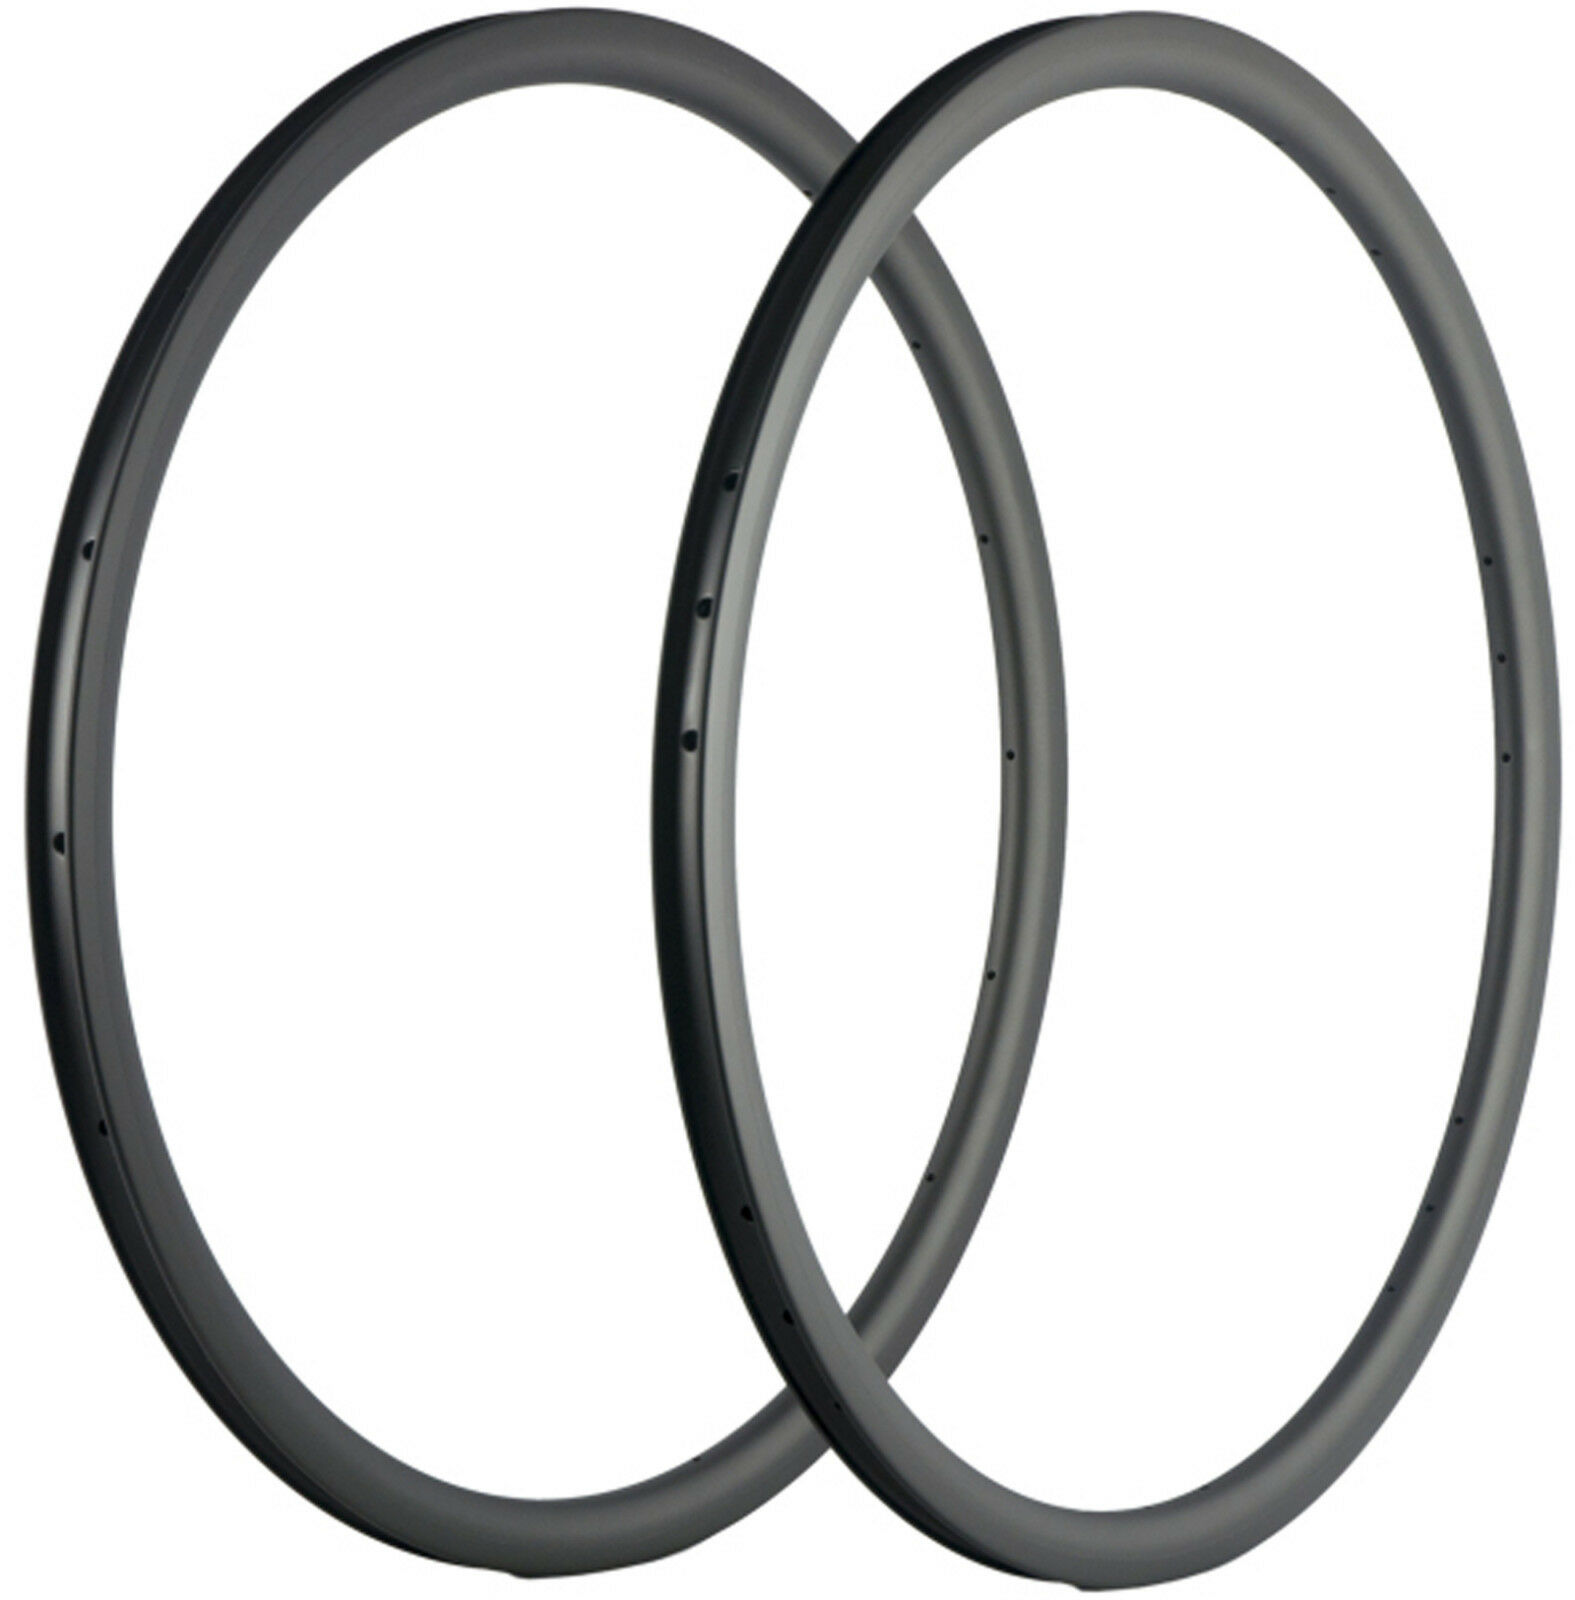 30mm  Depth Bicycle Carbon Rims 25mm U Shape Road Bike Cycle Rims 18 20 21 24 UD  up to 65% off